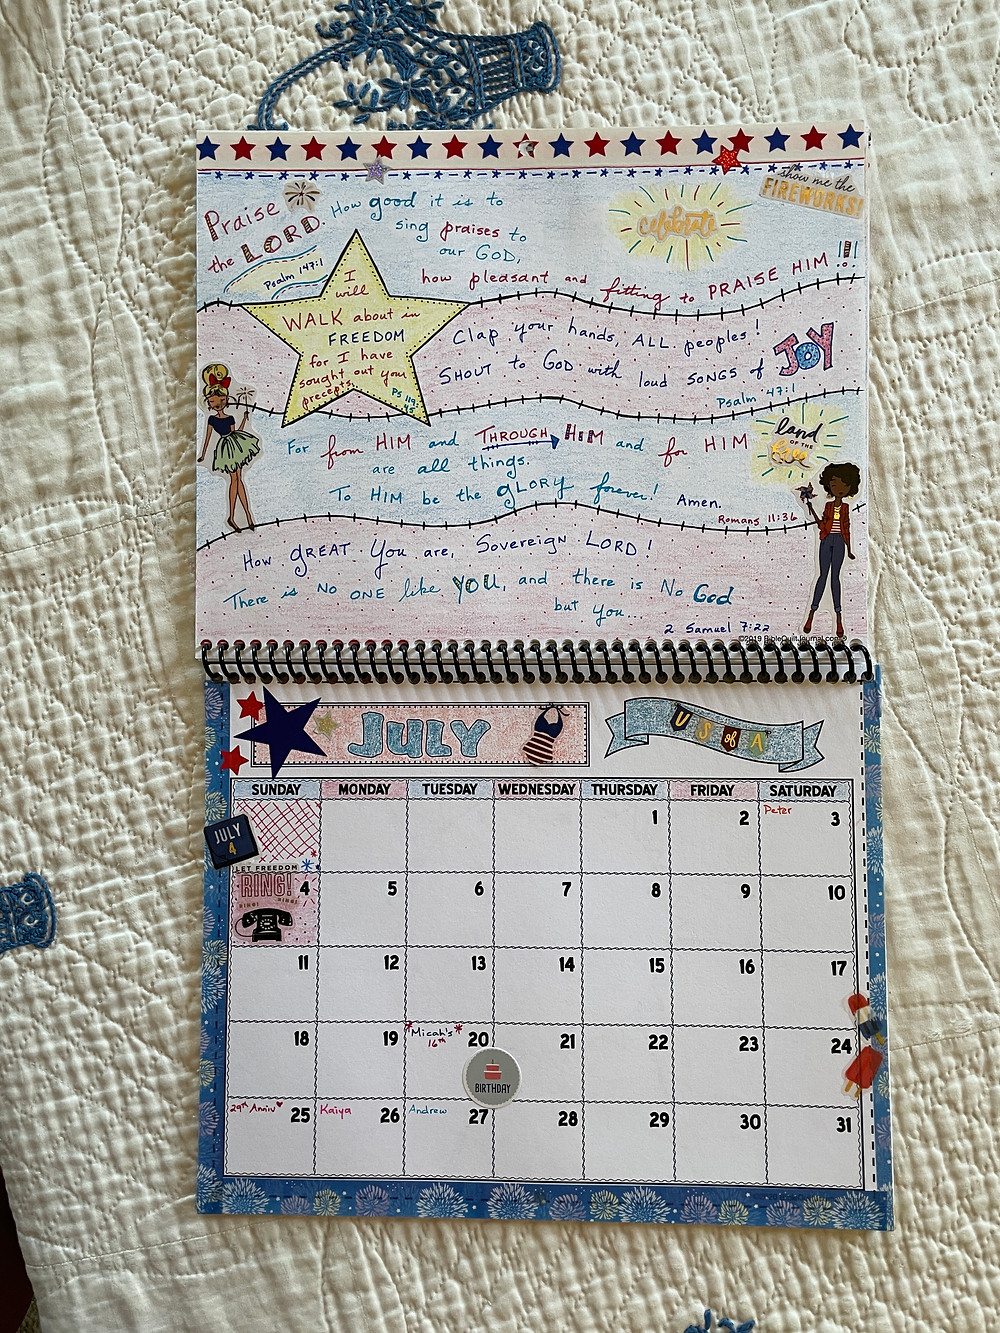 July page of Bible Quilt Journal calendar